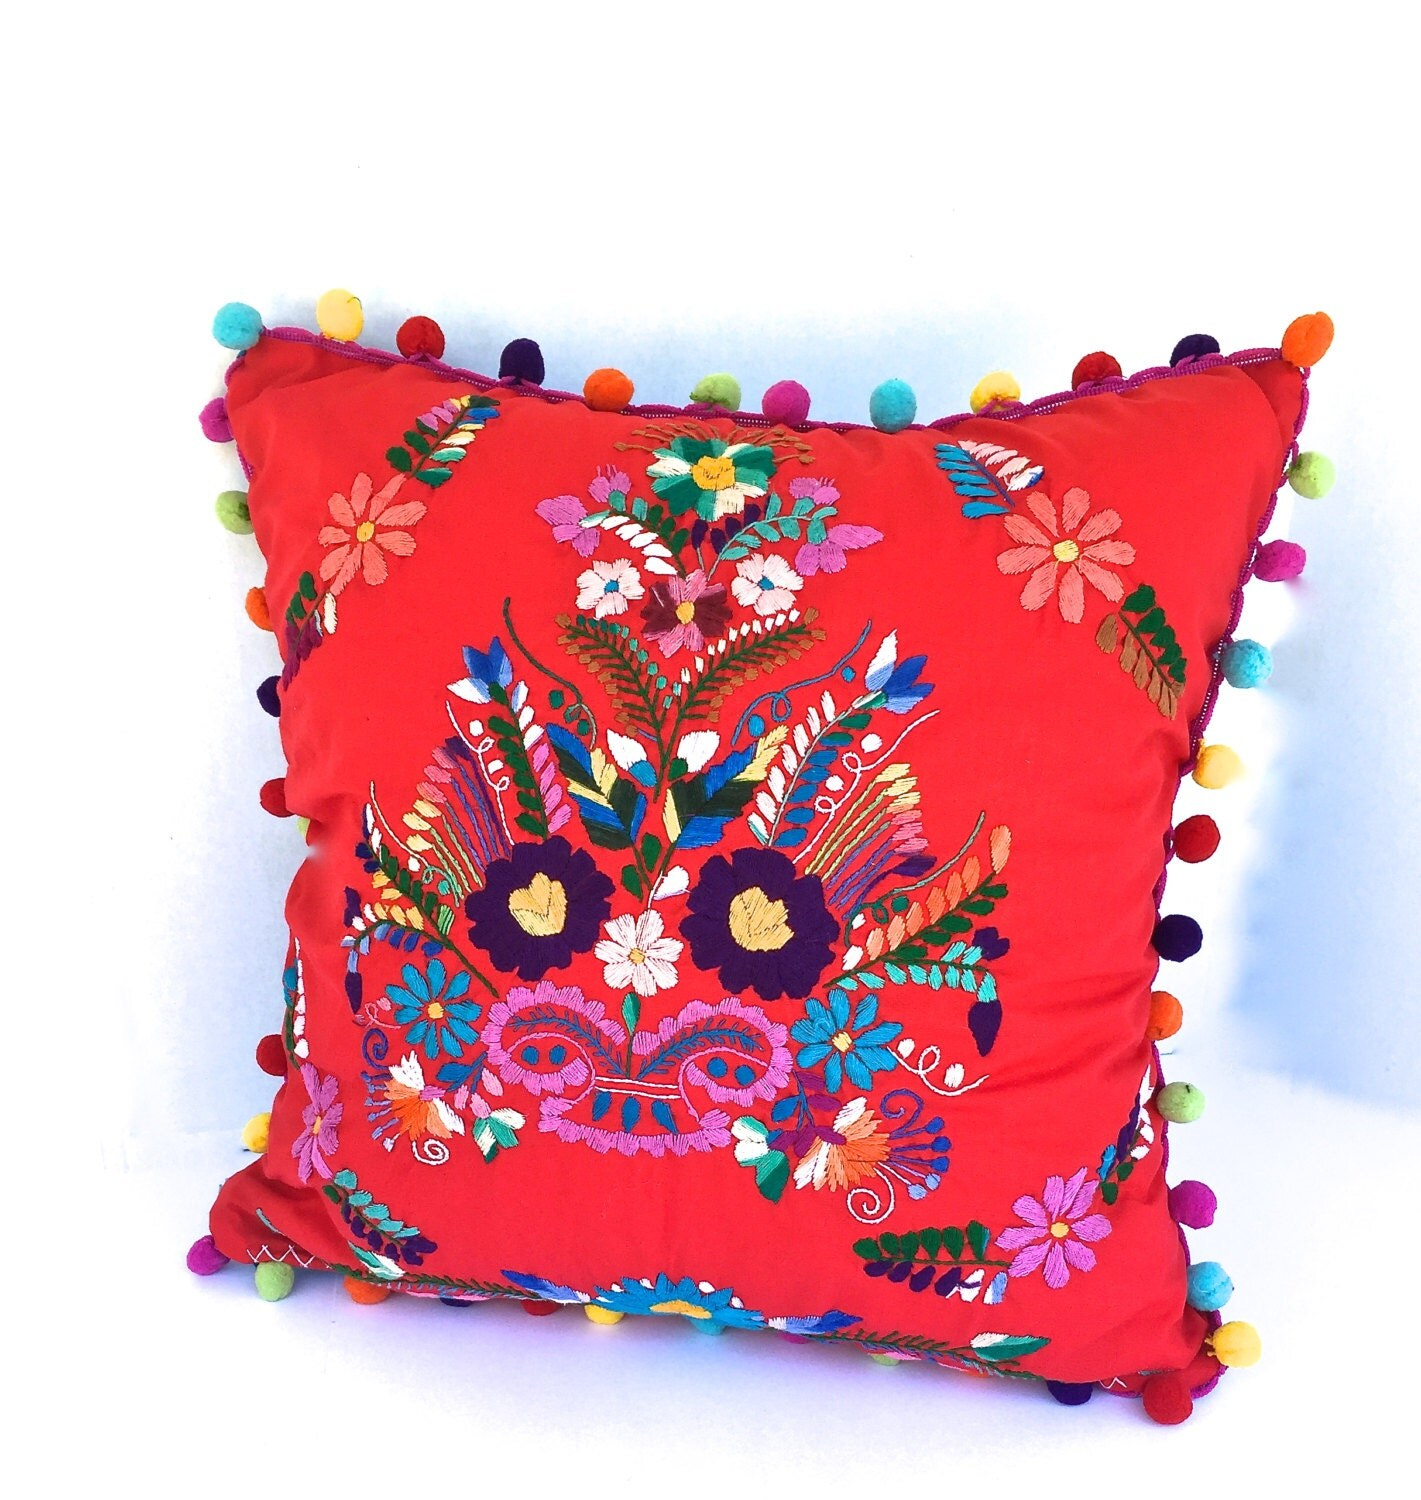 Embroidered Mexican Dress Pillow 18 Square Decorative